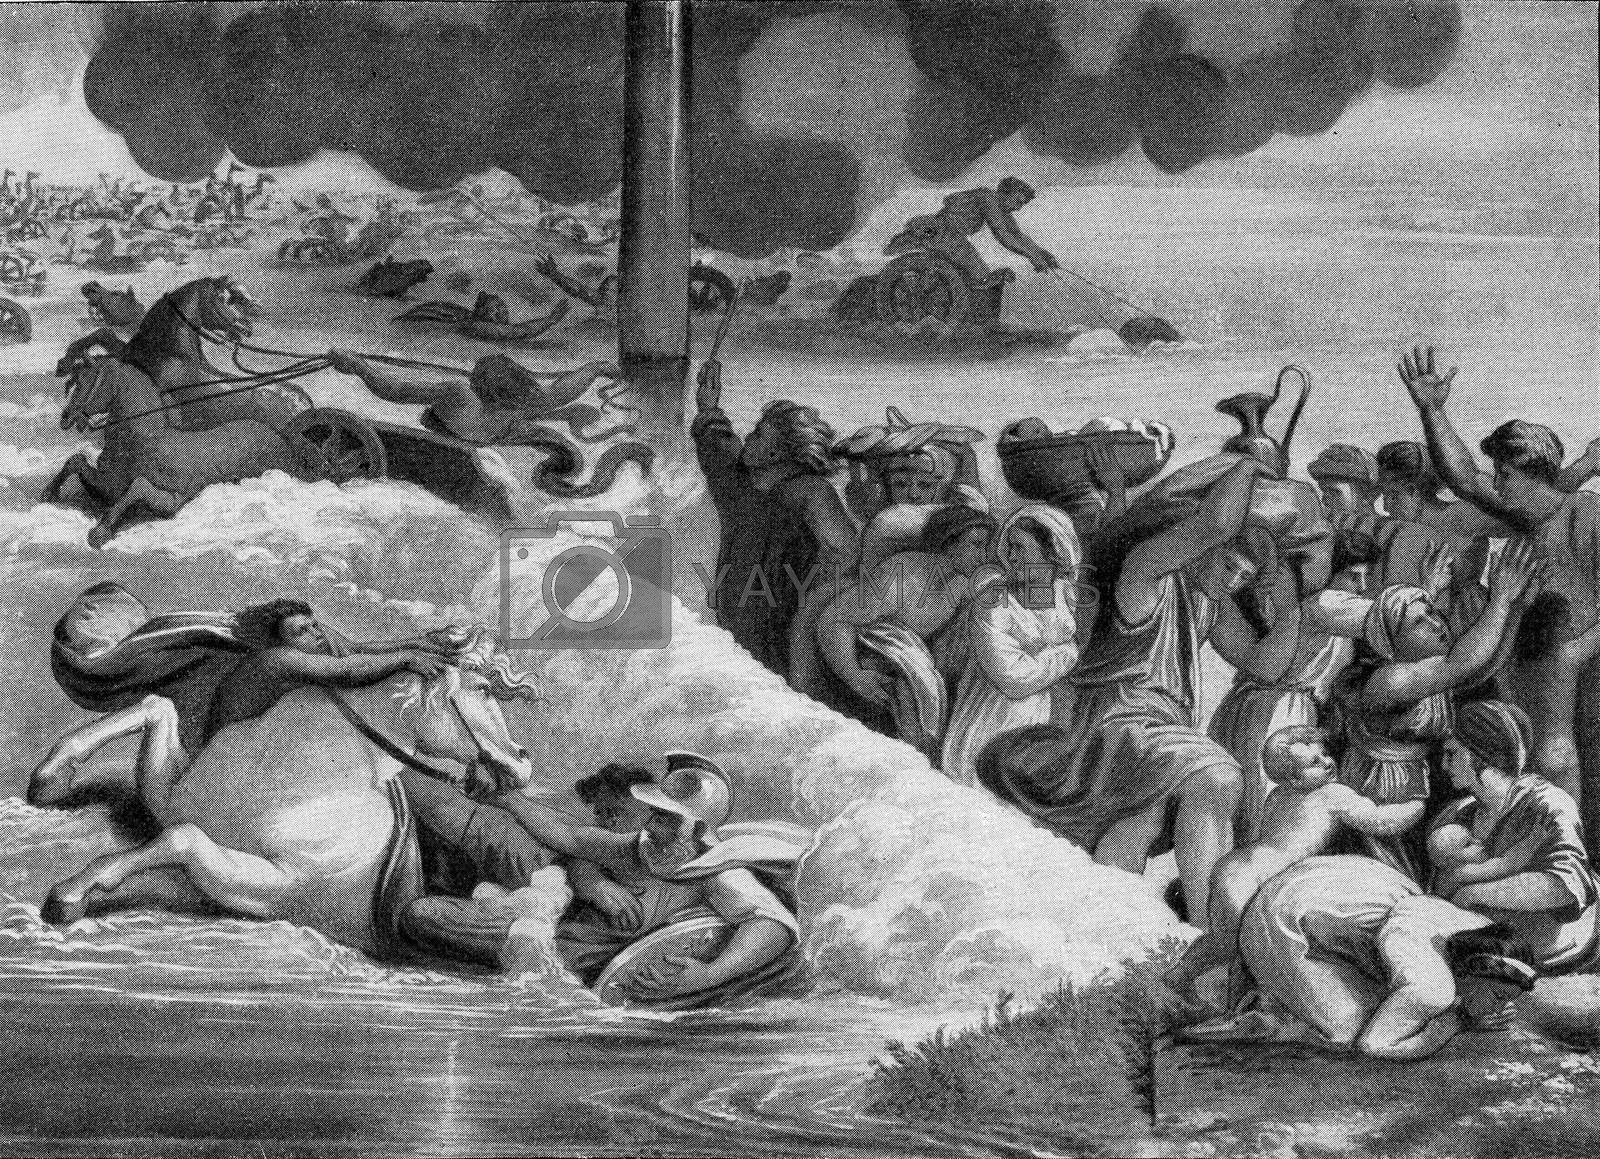 The Egyptians continue the Nights perish in the Red Sea, vintage engraved illustration. From the Universe and Humanity, 1910.